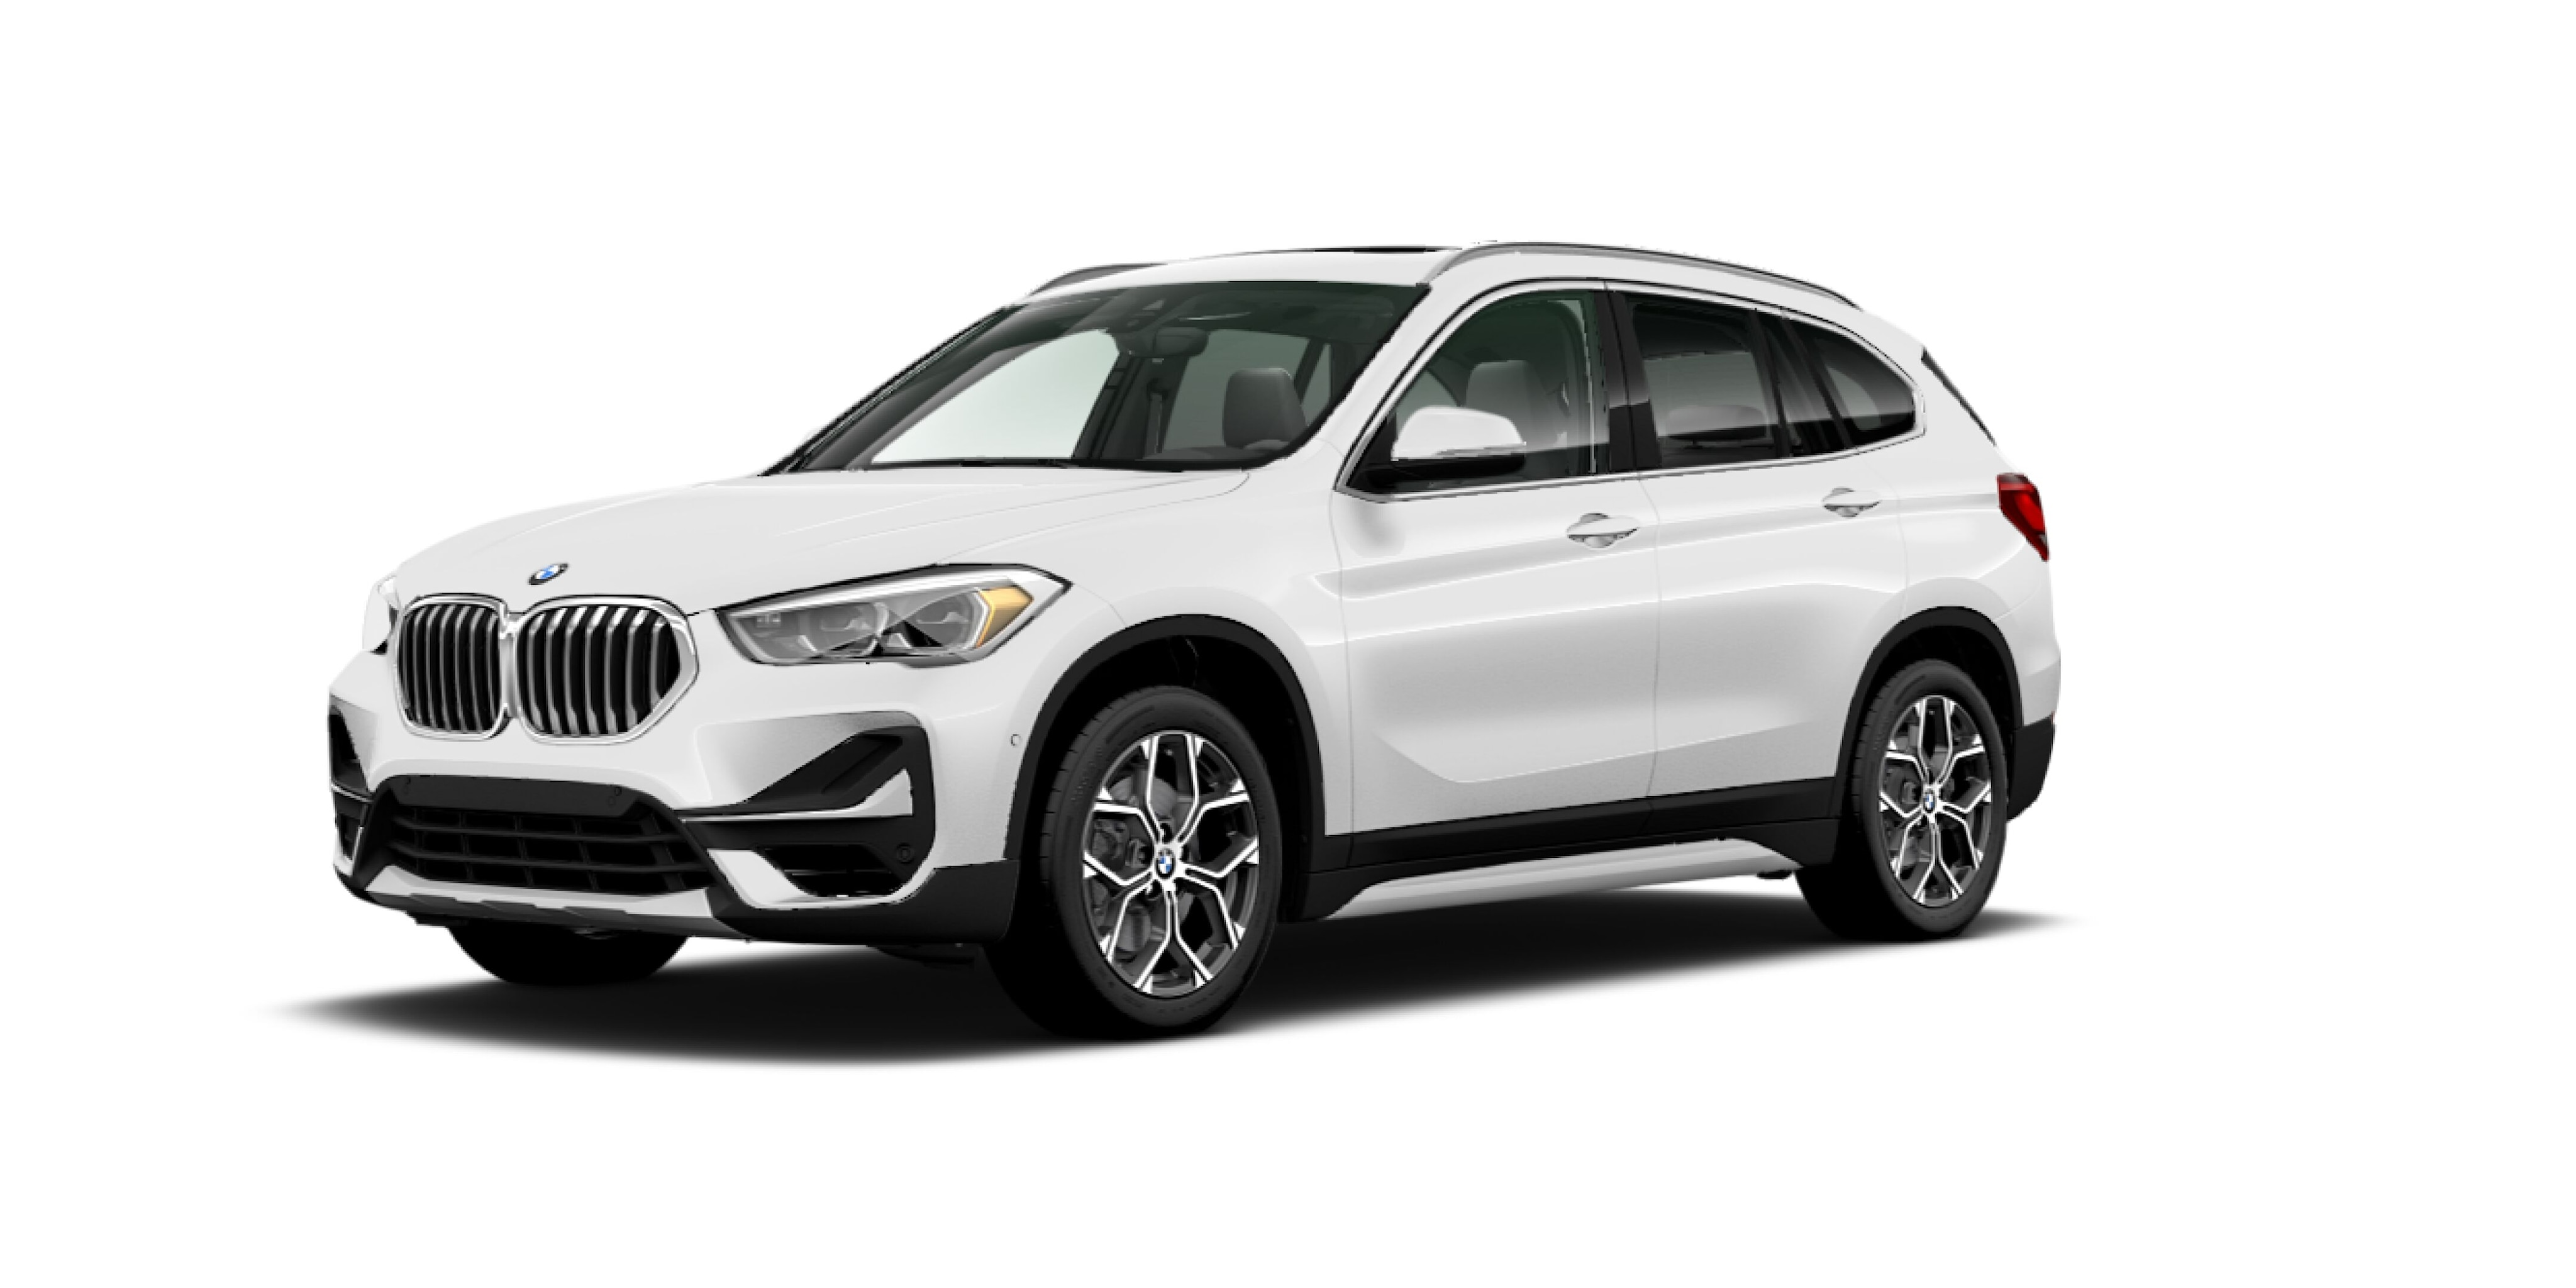 2021 bmw x1 sdrive28i suv for sale in fort lauderdale fl